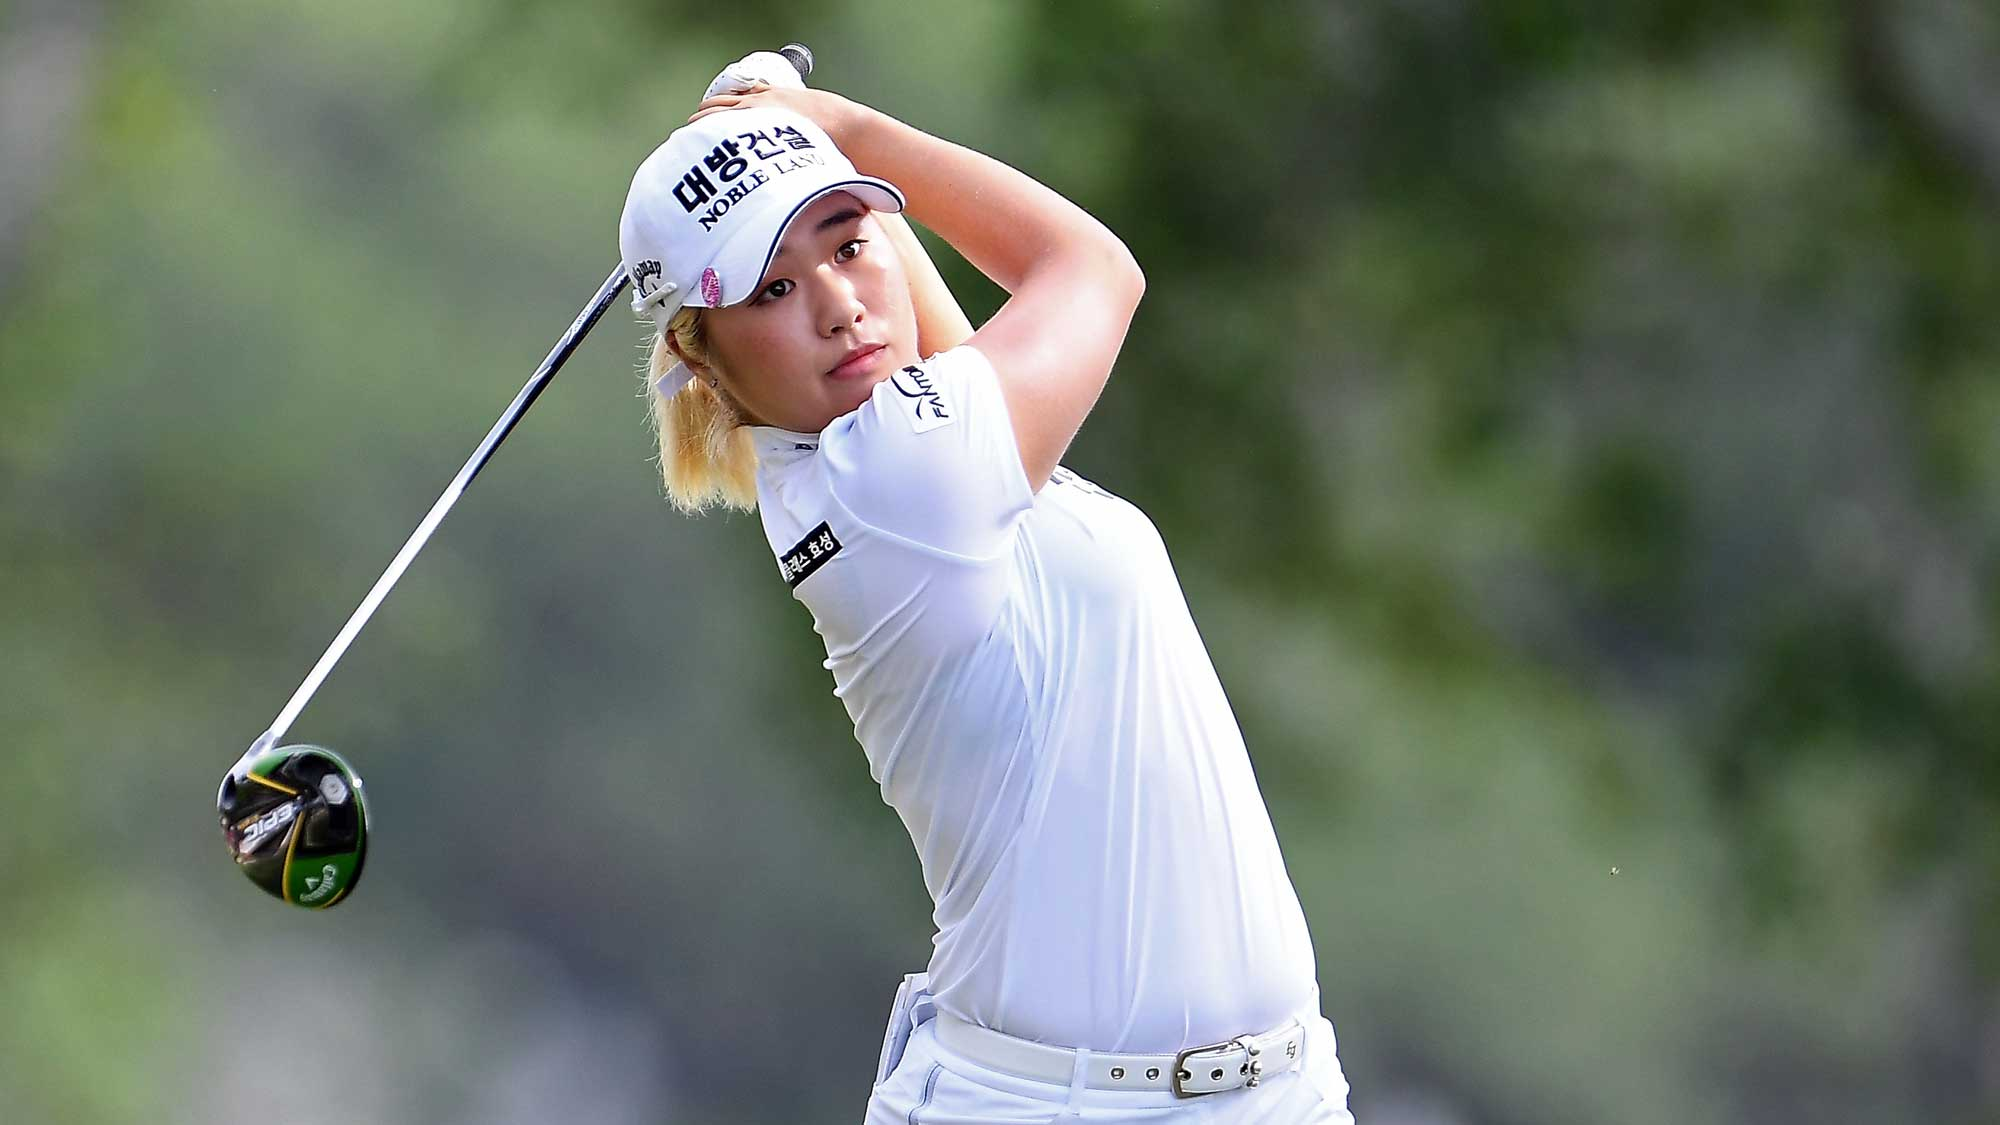 Jeongeun Lee6 Looking To Go Back-To-Back